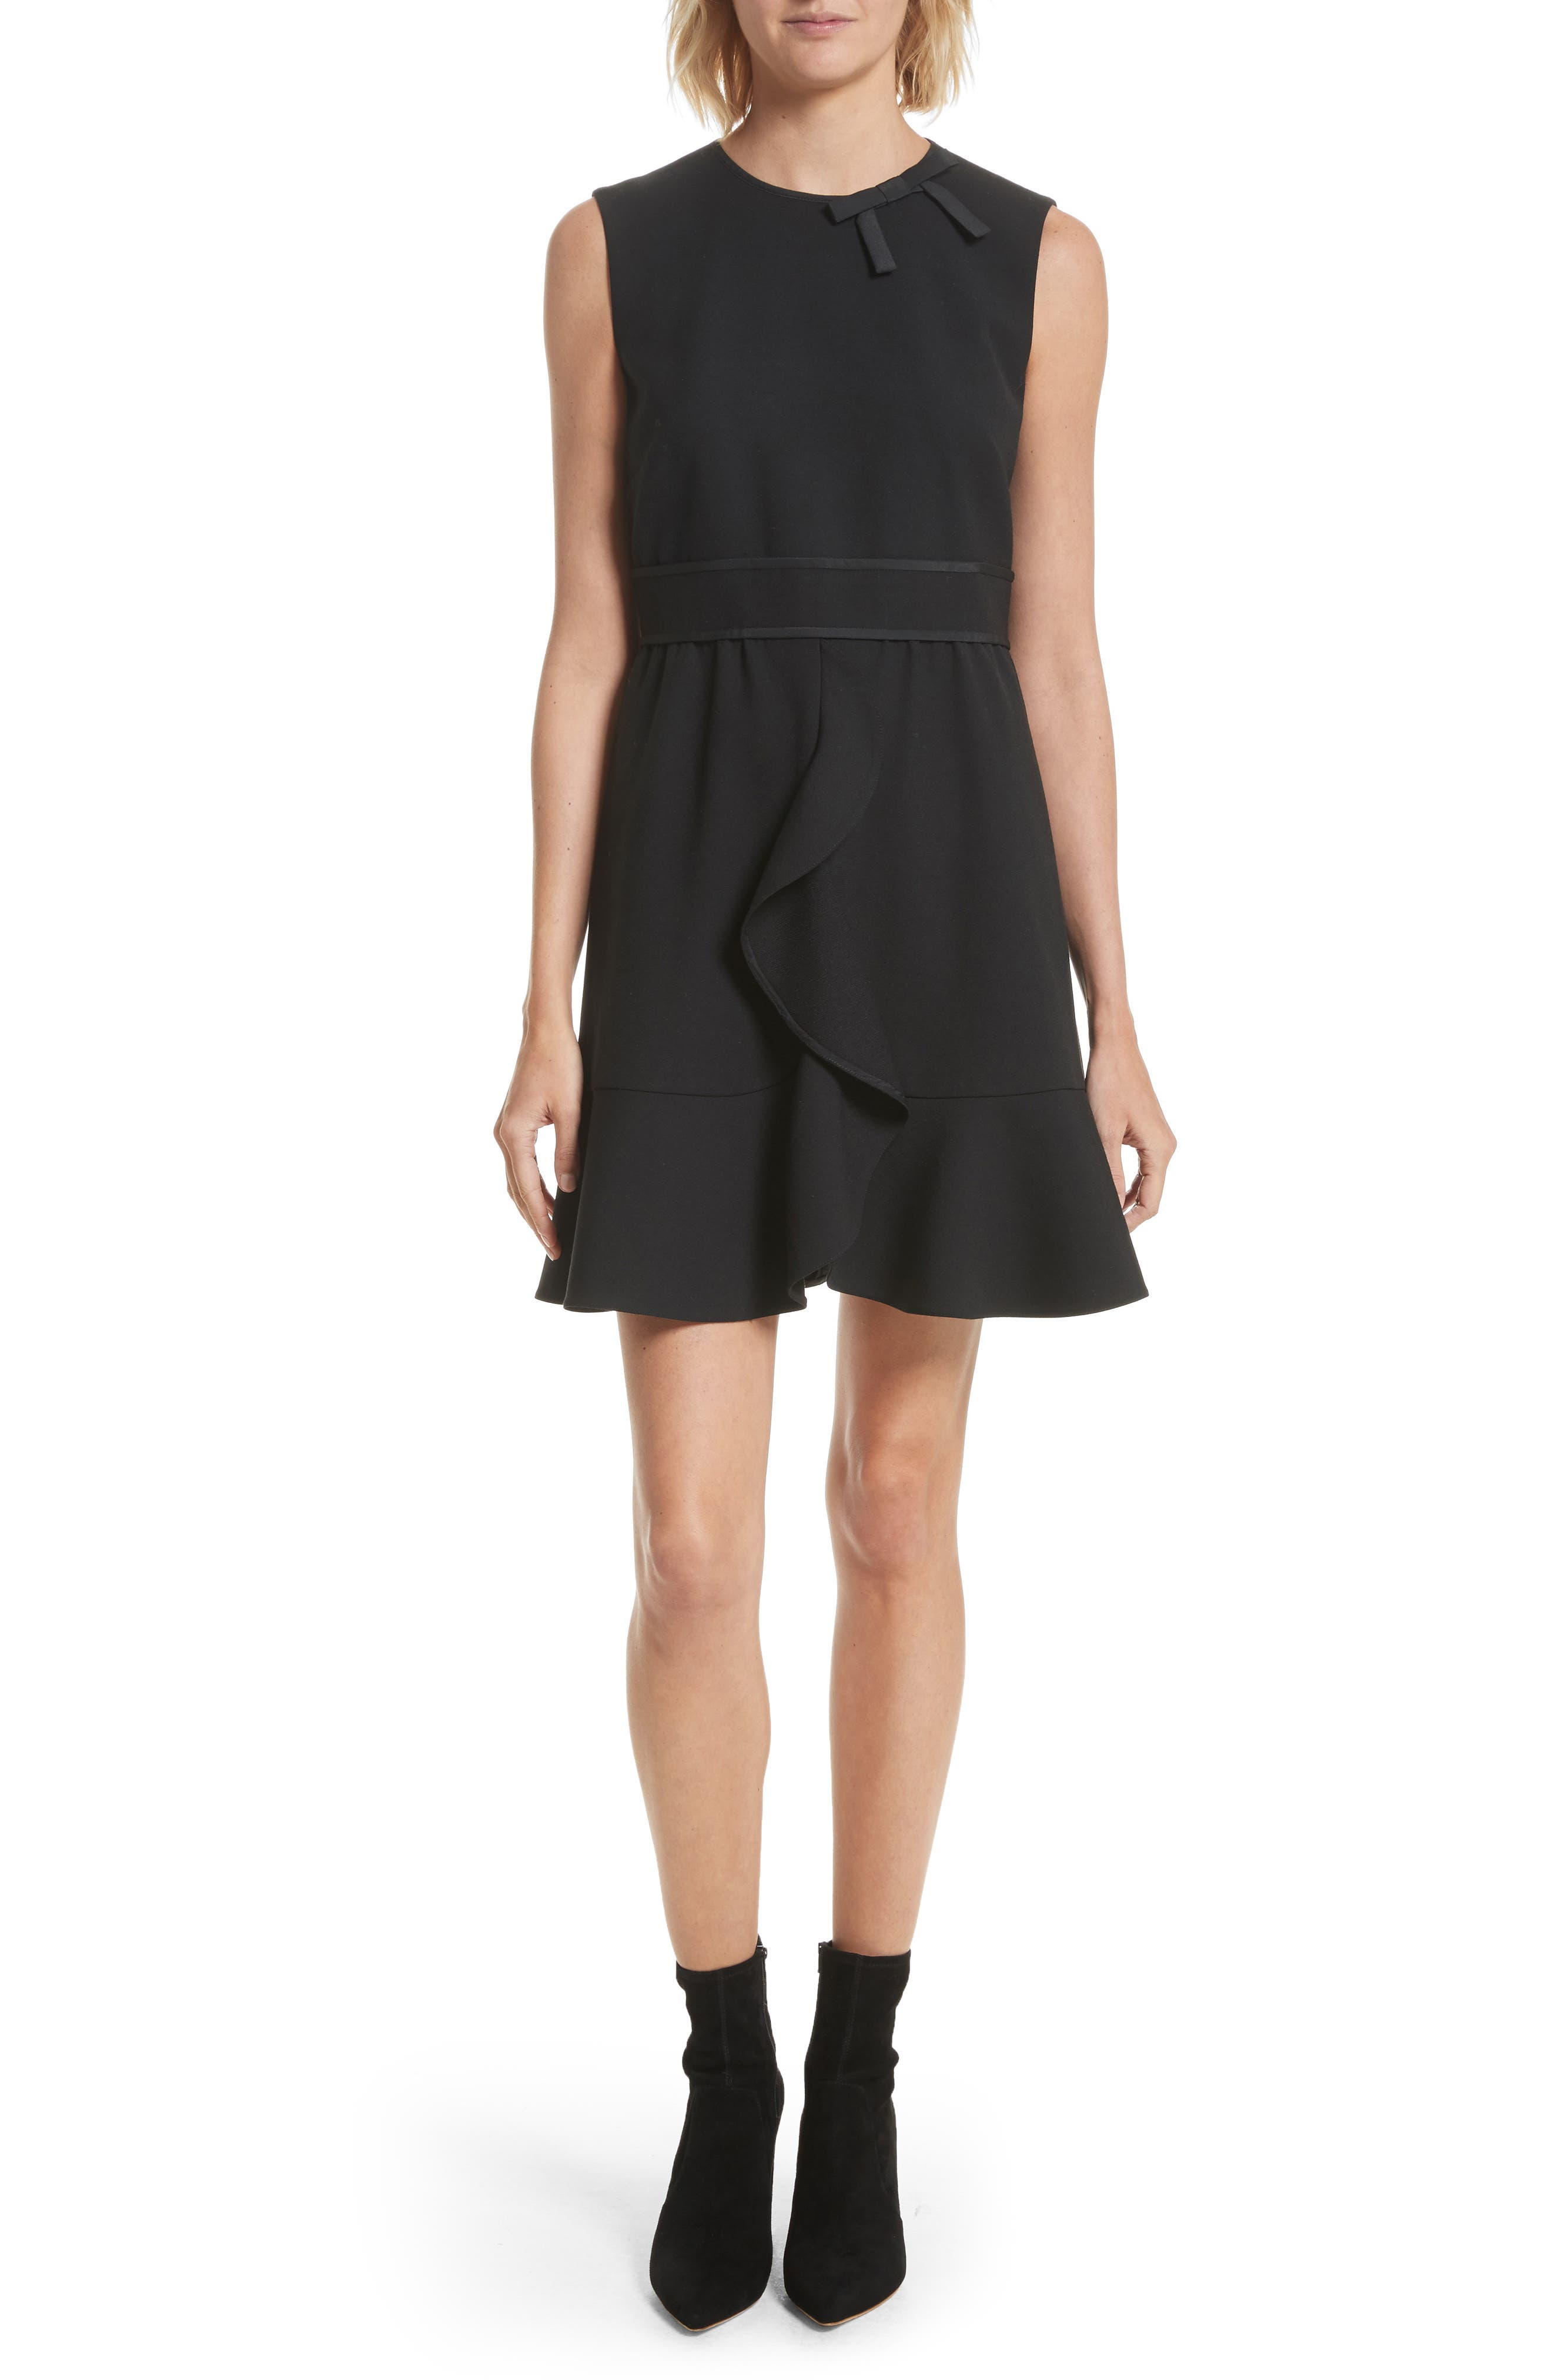 RED Valentino Cady Tech Dress